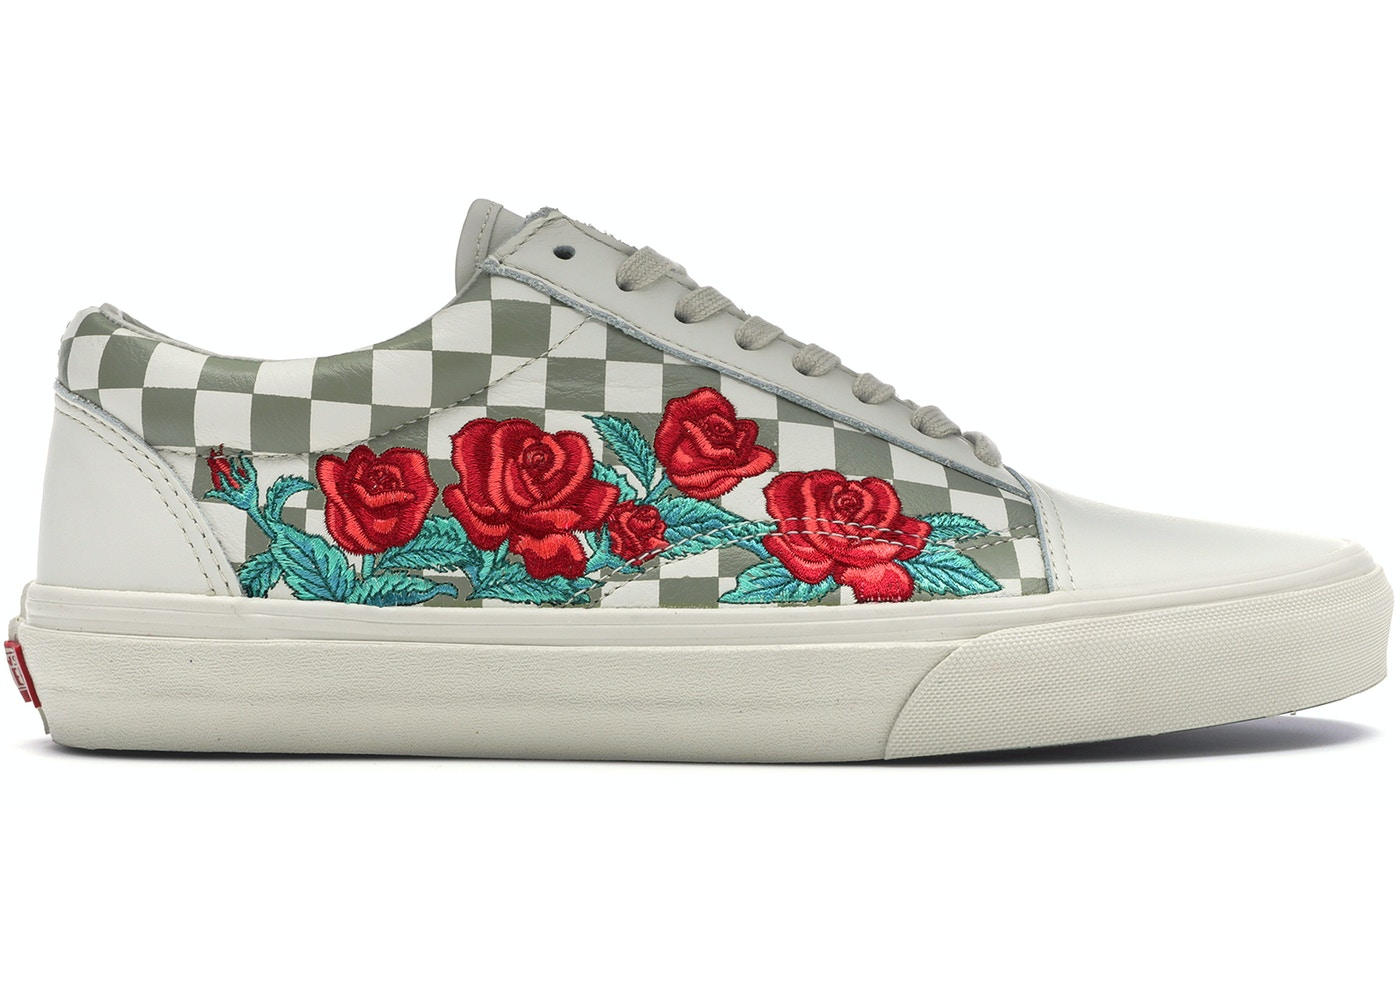 new release great deals 2017 up-to-date styling Vans Old Skool Rose Embroidery (White)